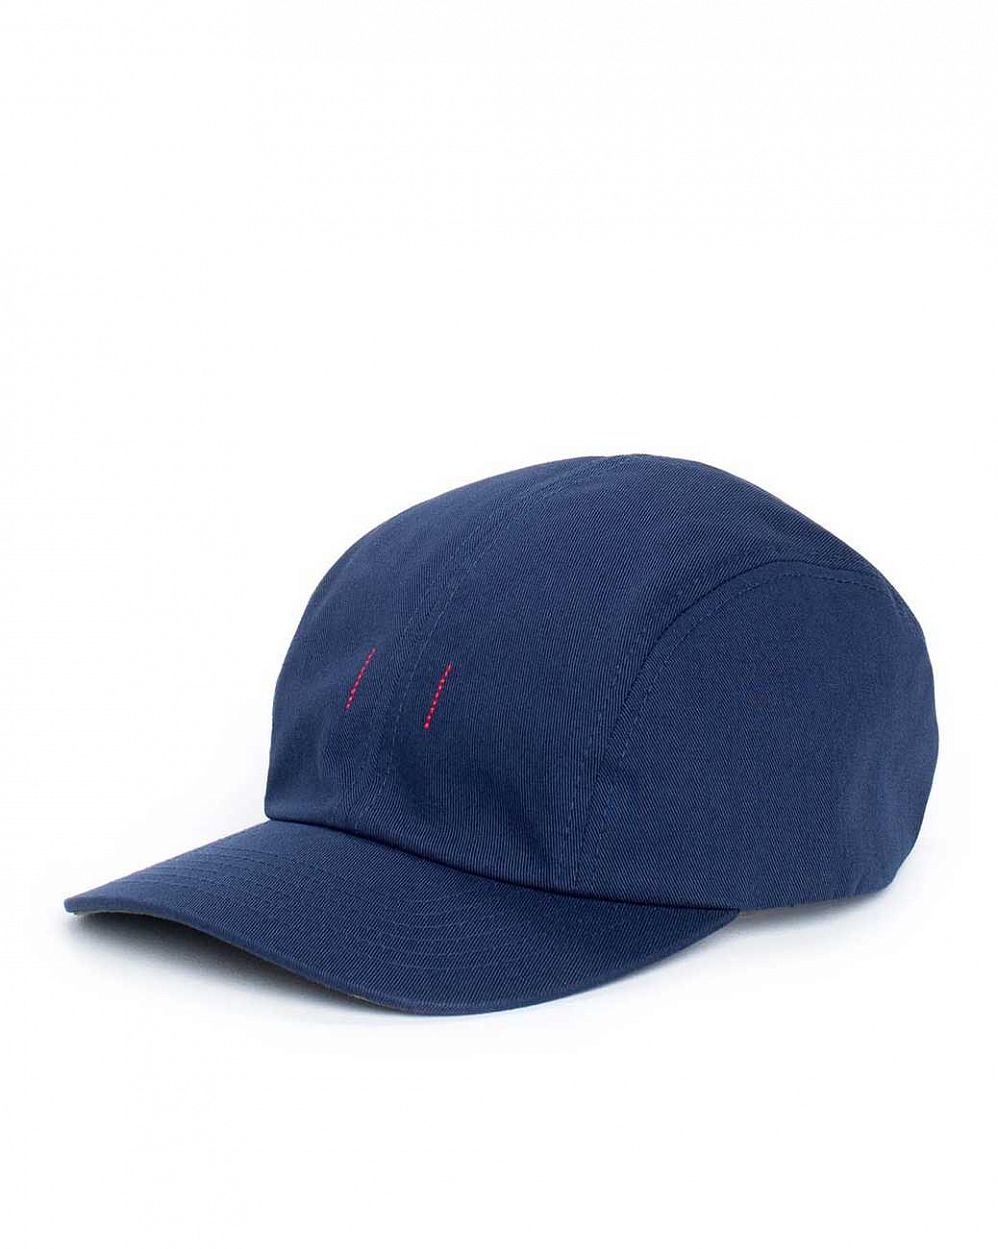 Бейсболка 4 панели Cap Herschel Supply Co Owen Navy отзывы